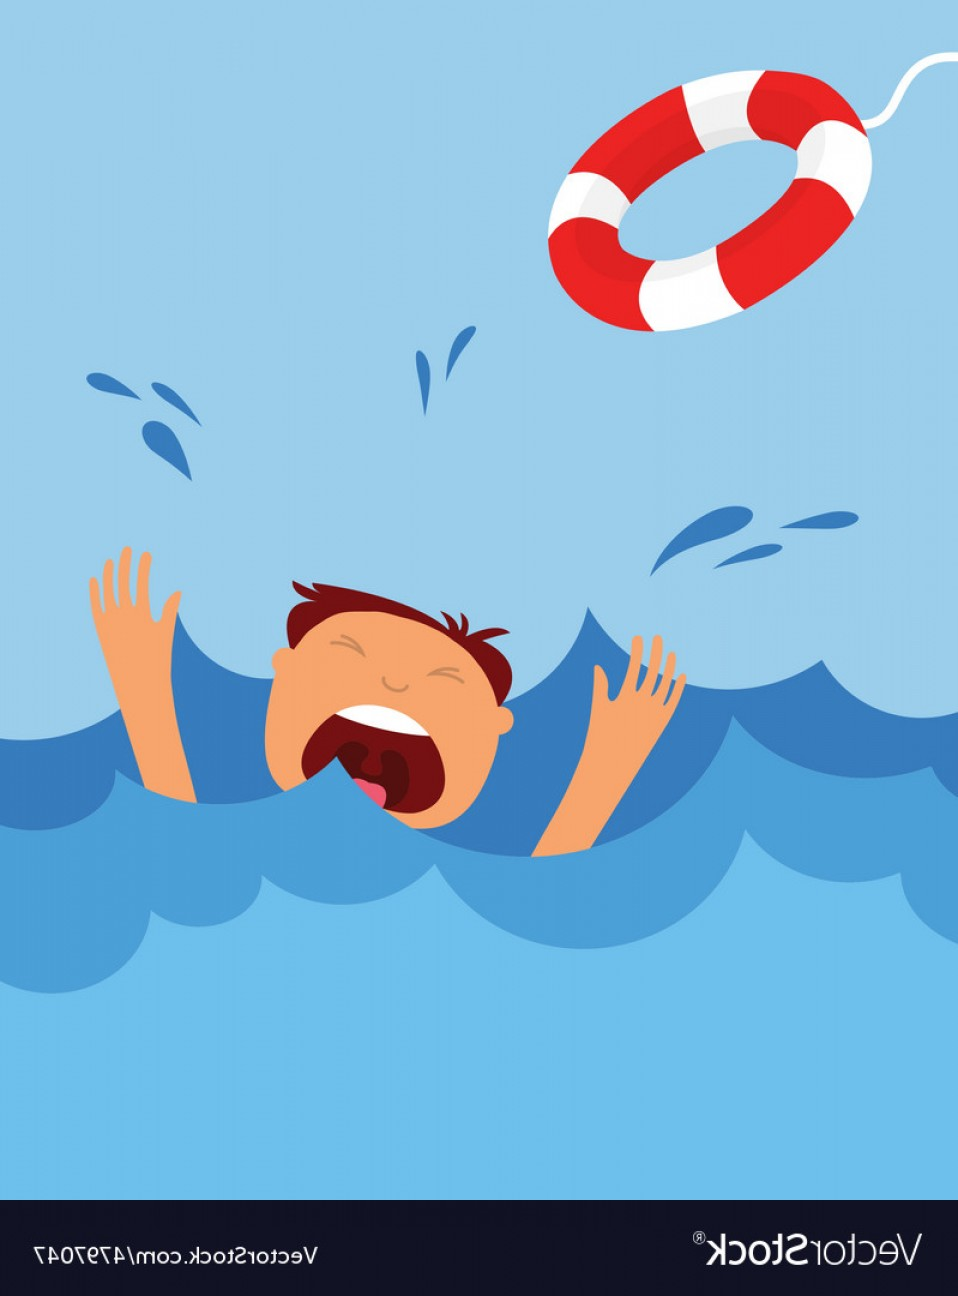 Man Drowning Vector: Drowning Man Screaming For Help Summer Danger Vector